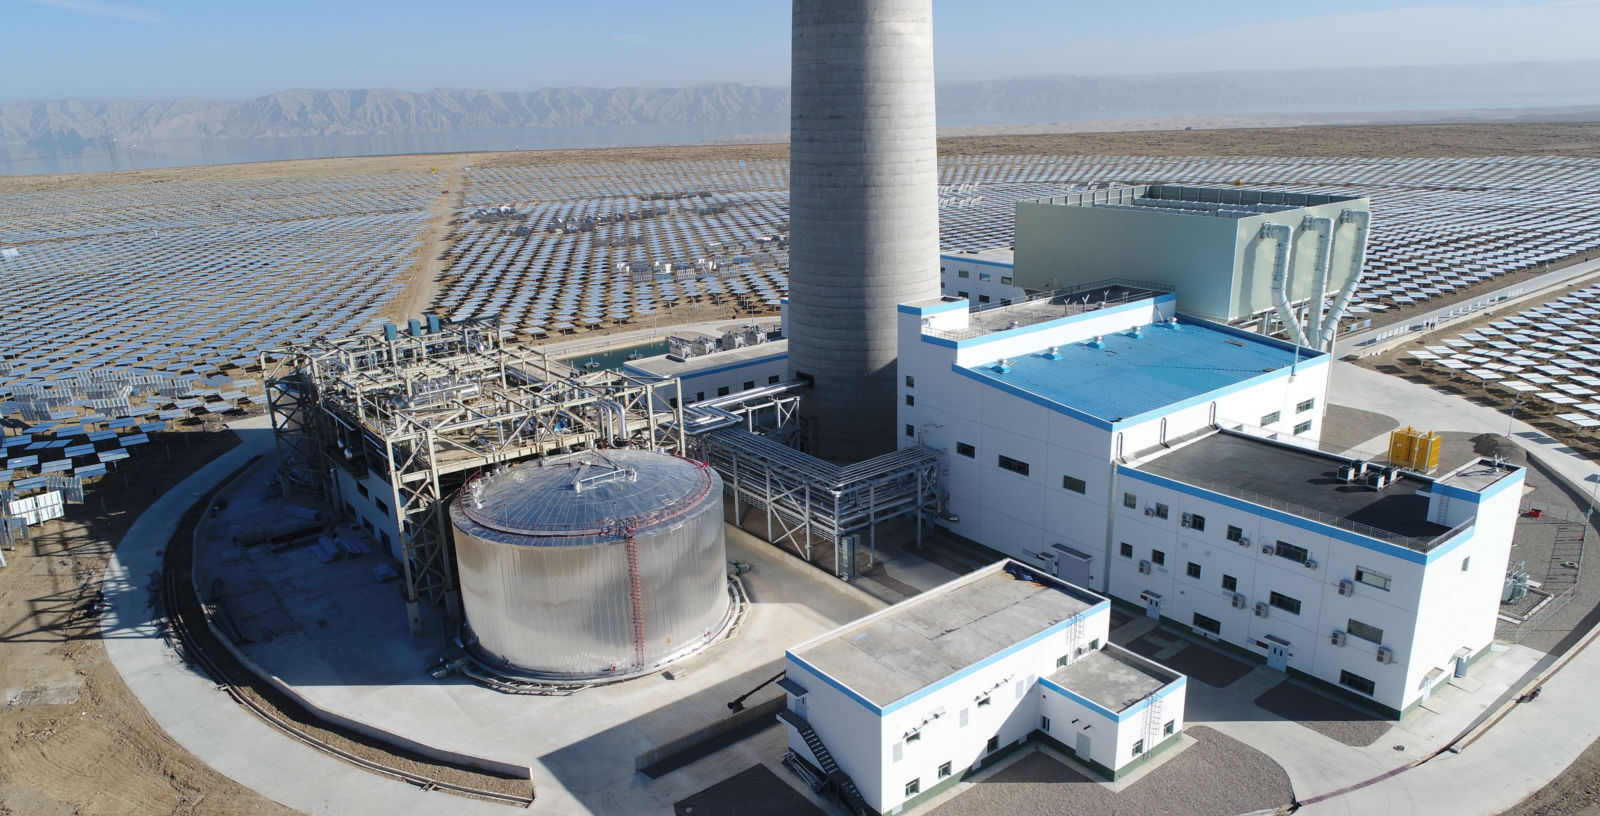 CSP_ Plants_Tower_Molten_Salts_Thermal Storage System_Gonghe_China_IDOM_00